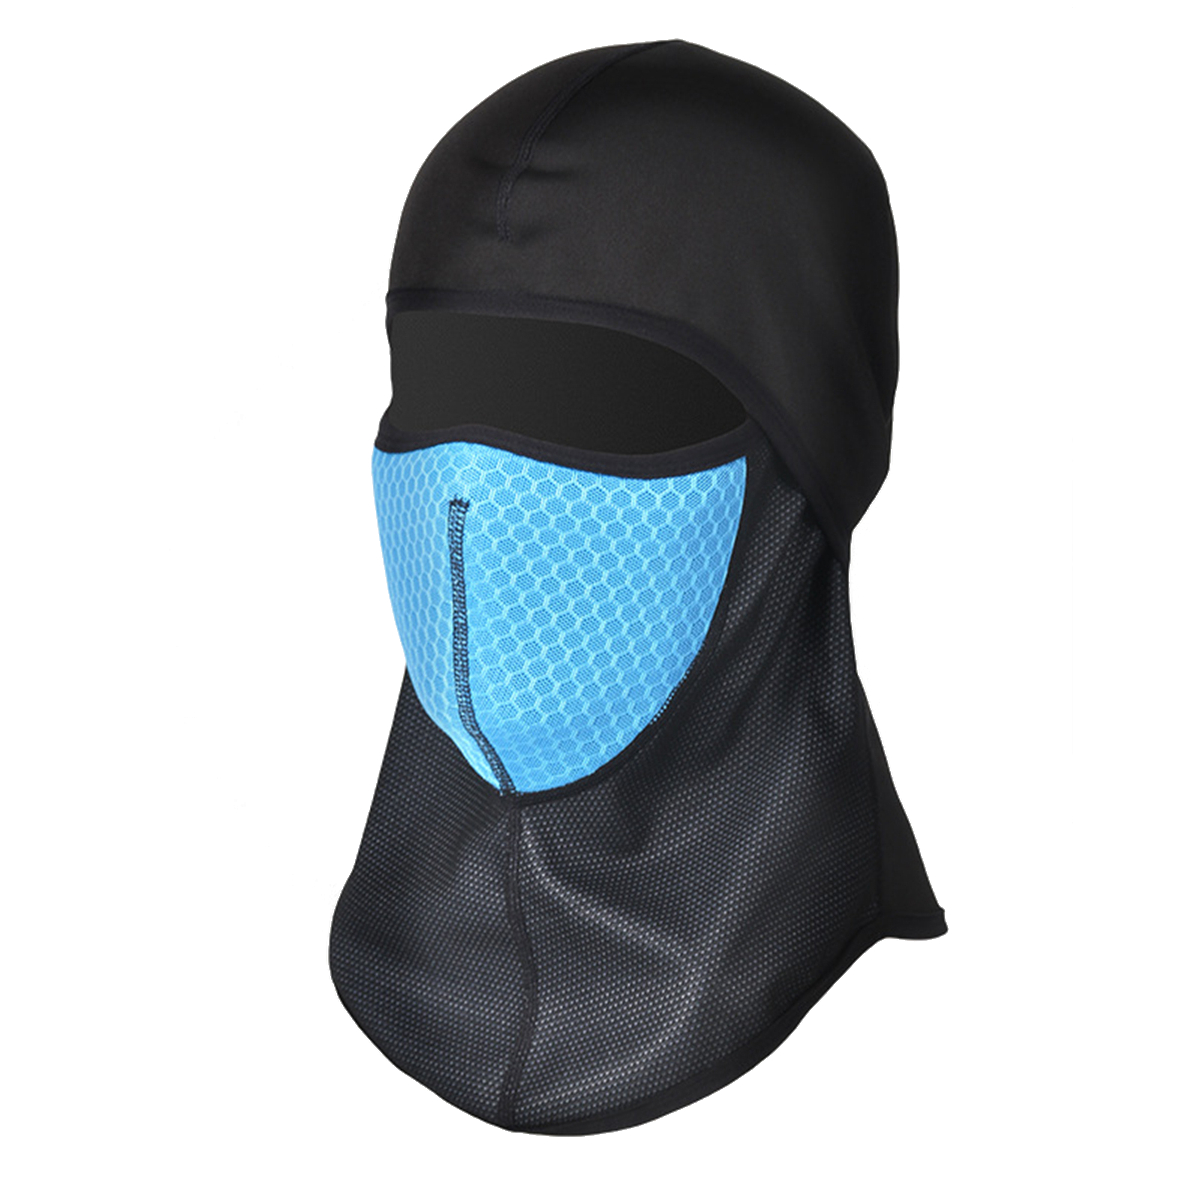 Outdoor Motorcycle Full Face Mask Bike Ski Fishing Winter Neck Warm Windproof